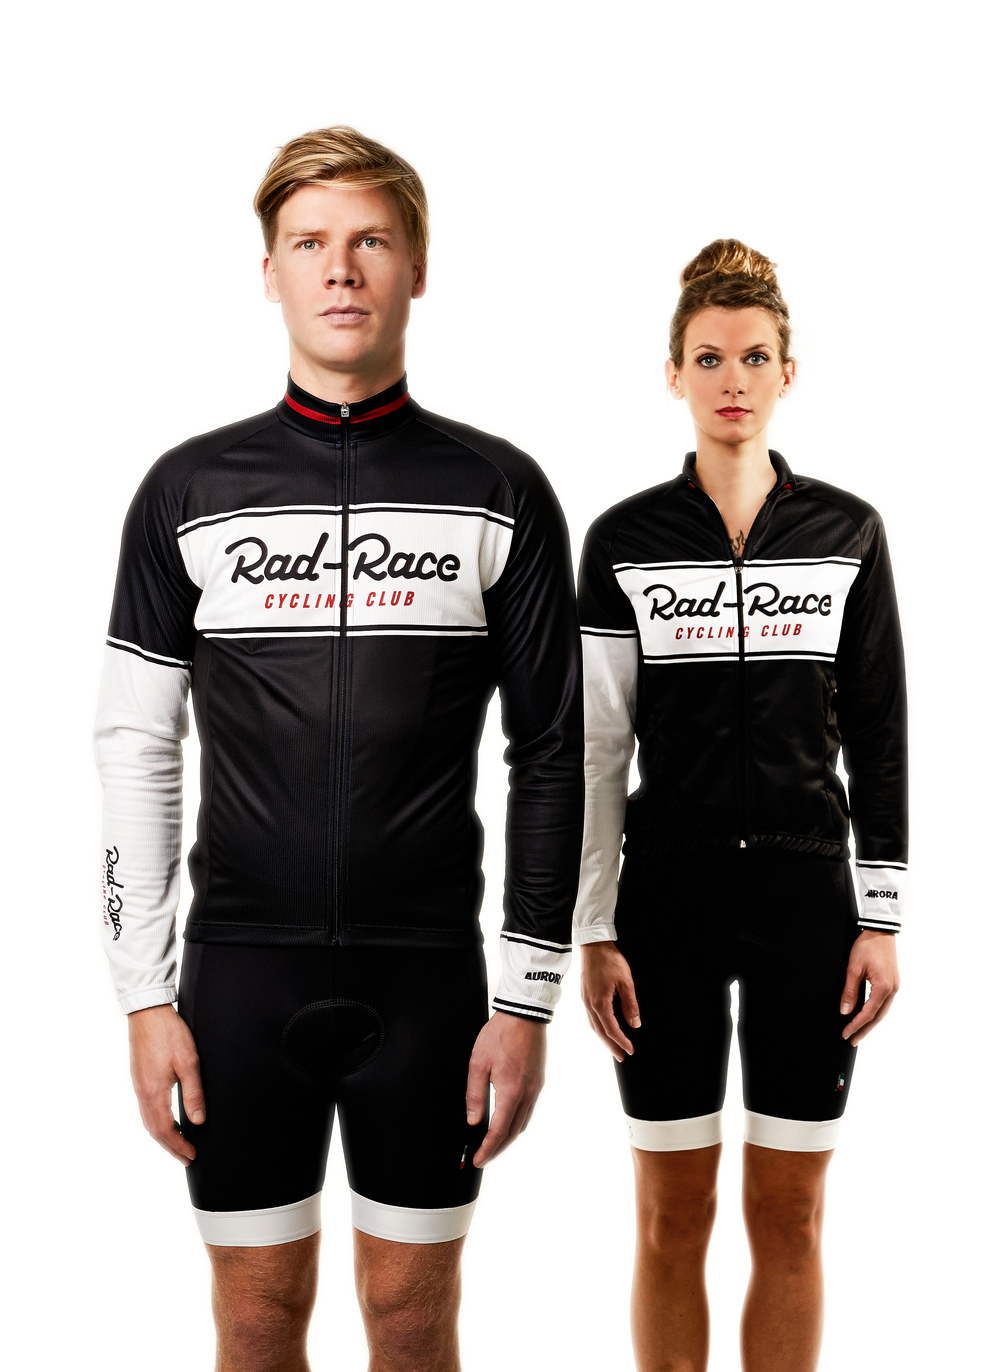 RadRaceShop_CyclingClub_21.jpg